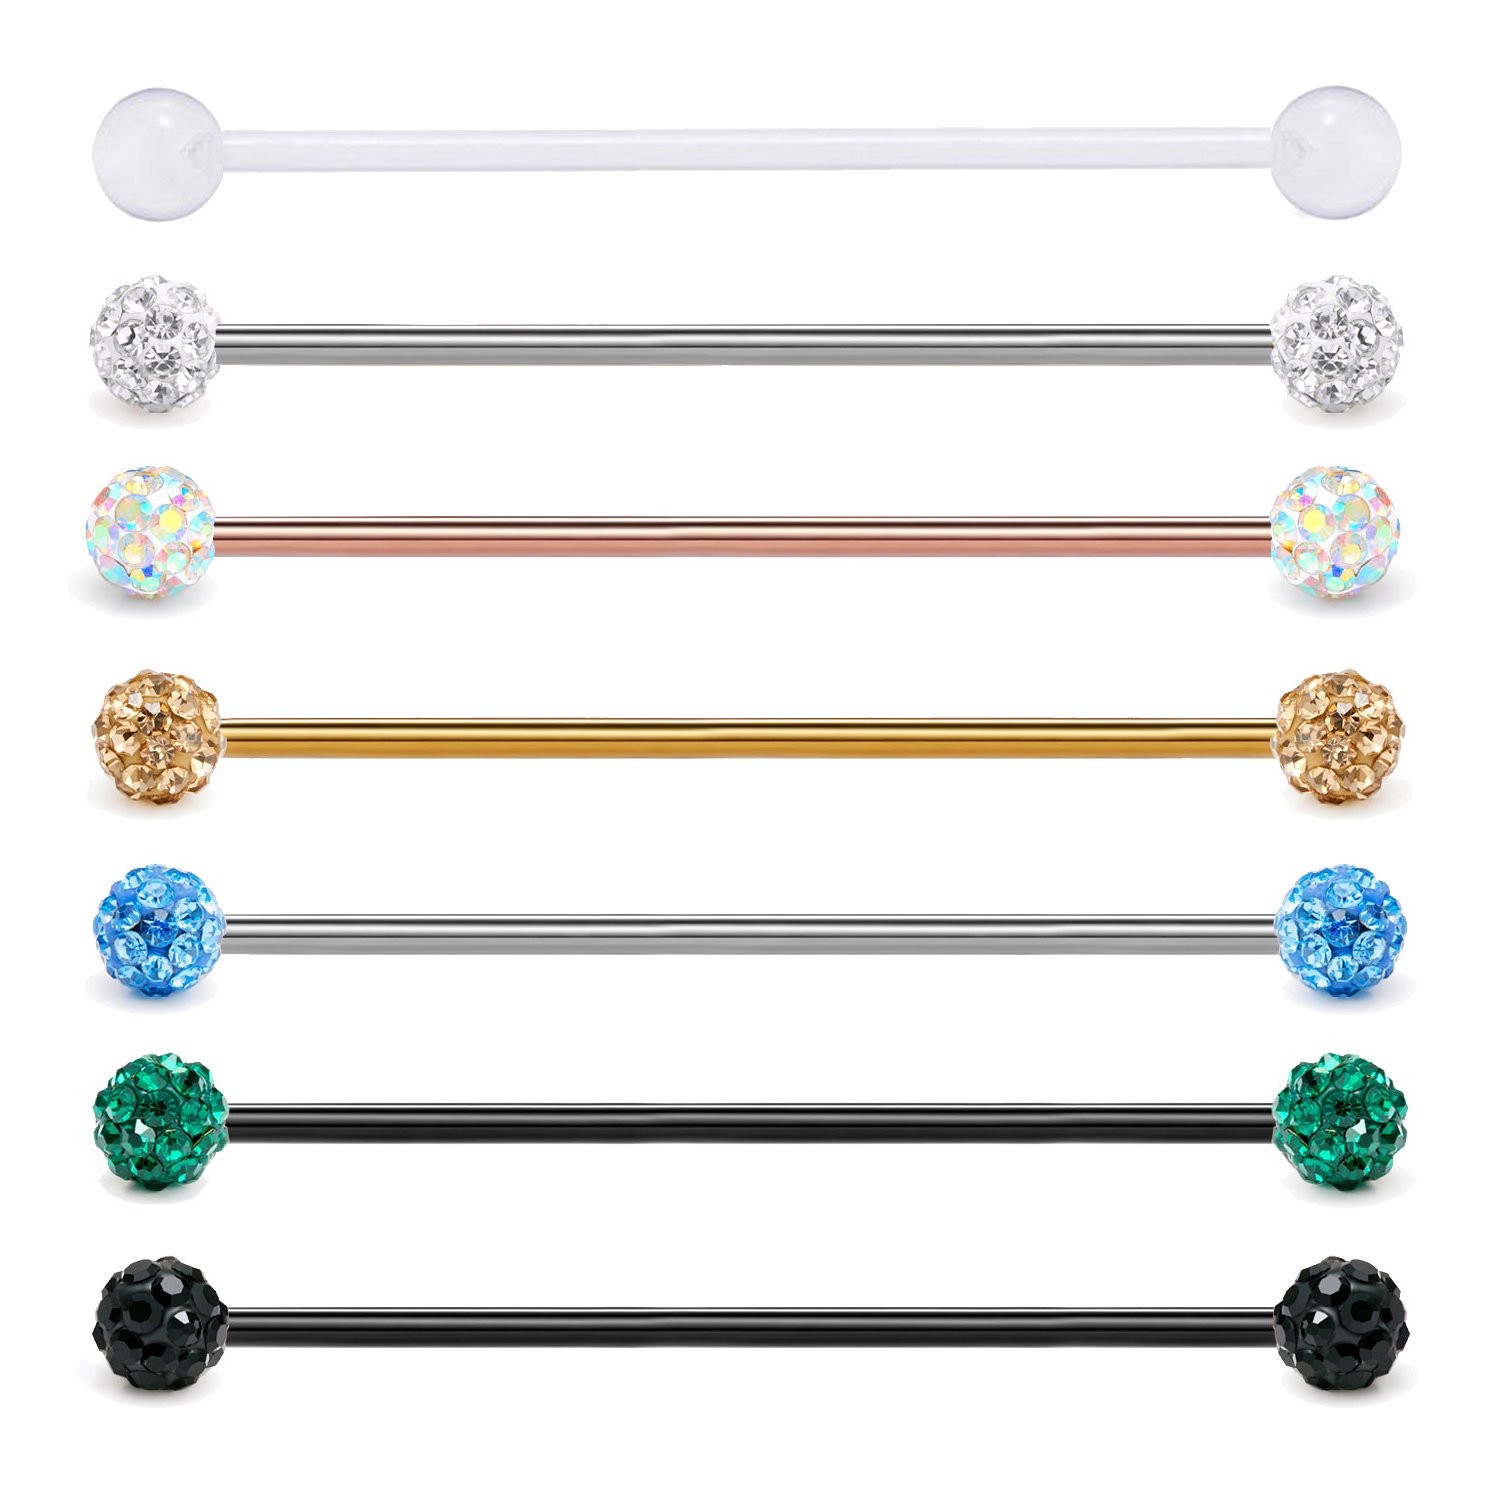 "Retainer Body Piercing Jewelry JFORYOU 14G Industrial Barbells Surgical Steel Cartilage Earring 1 1//2/"" 38mm"